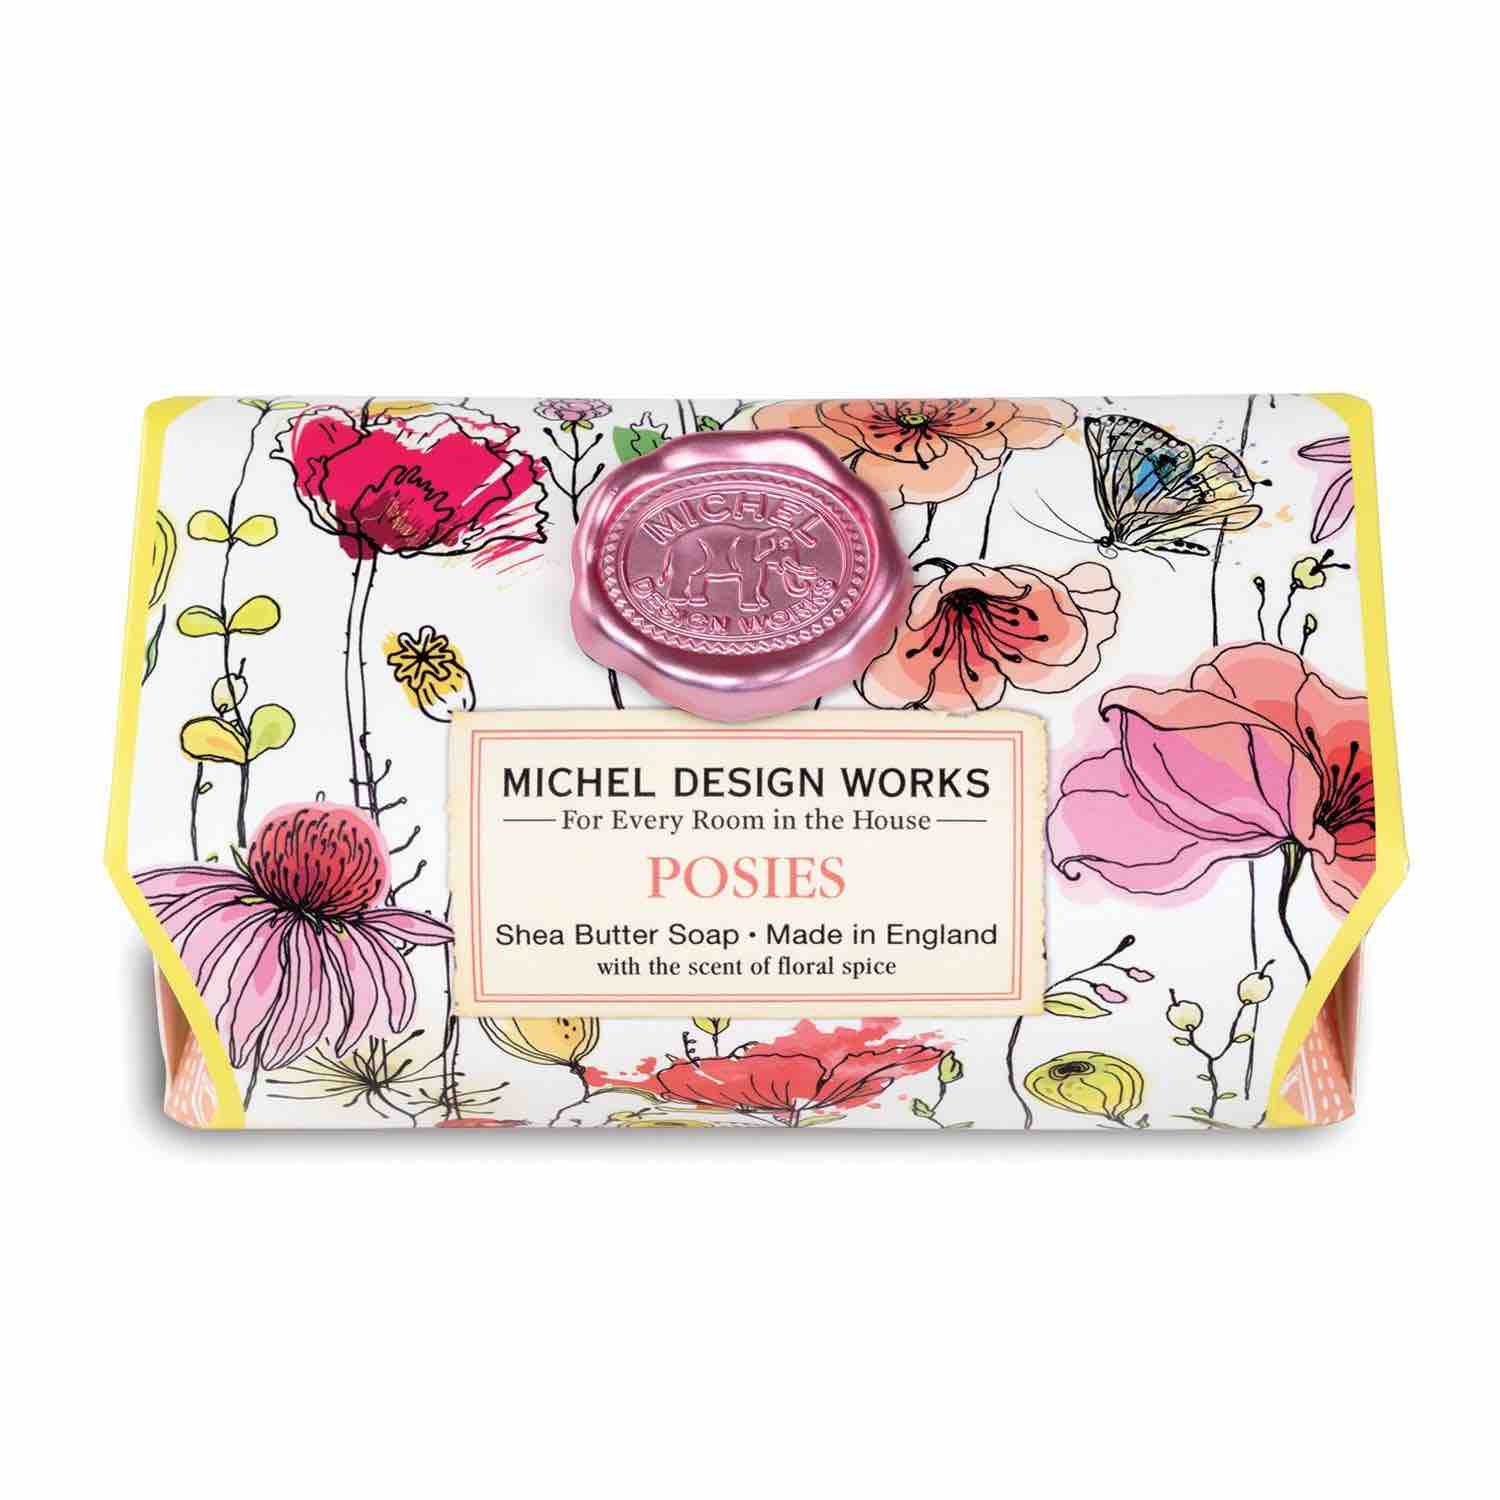 Michel Design Works Large Bath Soap Bar | Posies